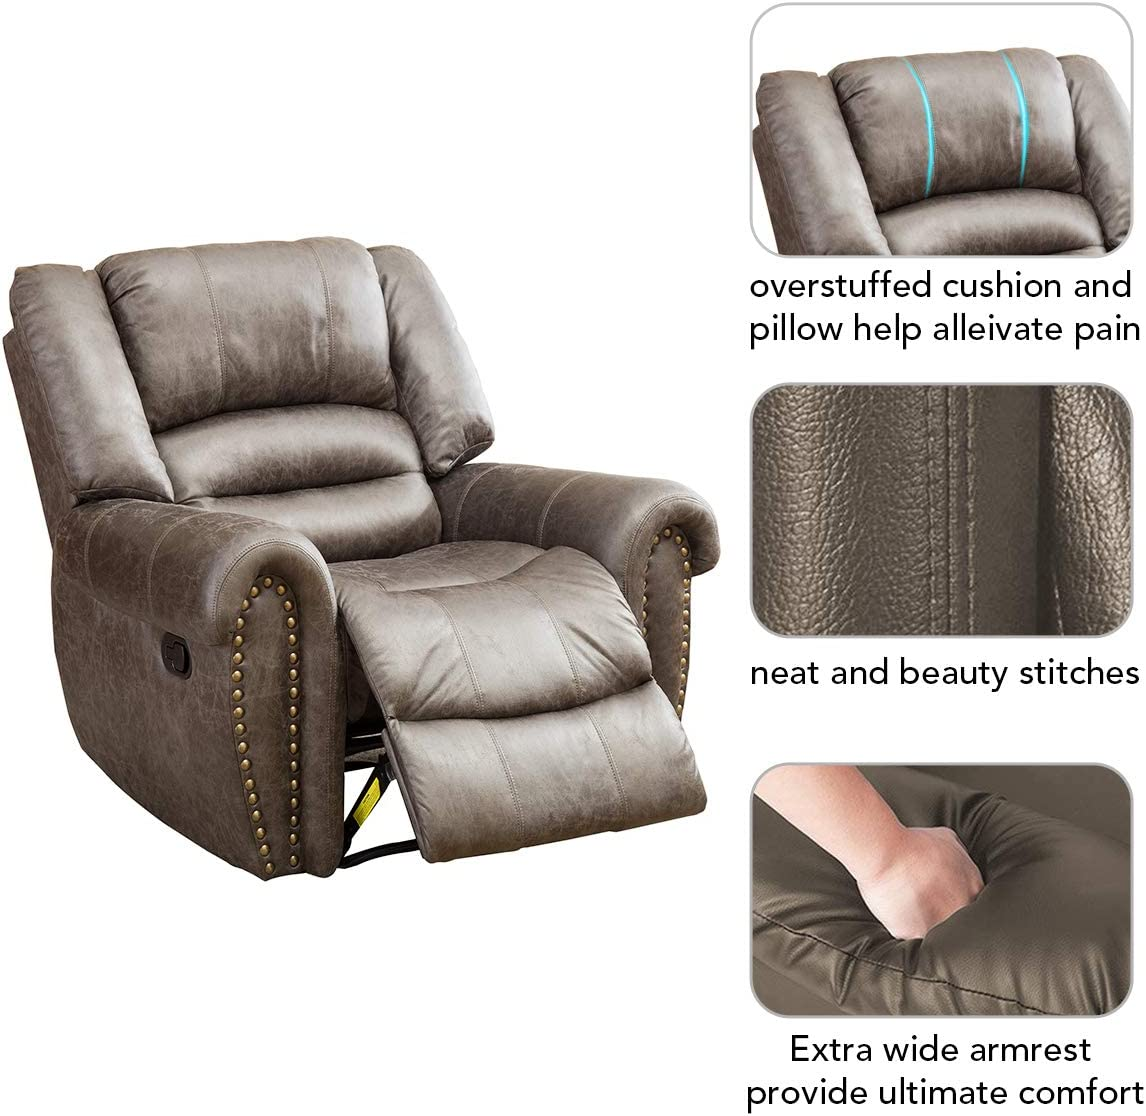 BONZY Oversized Recliner Leather Lounge Chair ultimate comfort leather